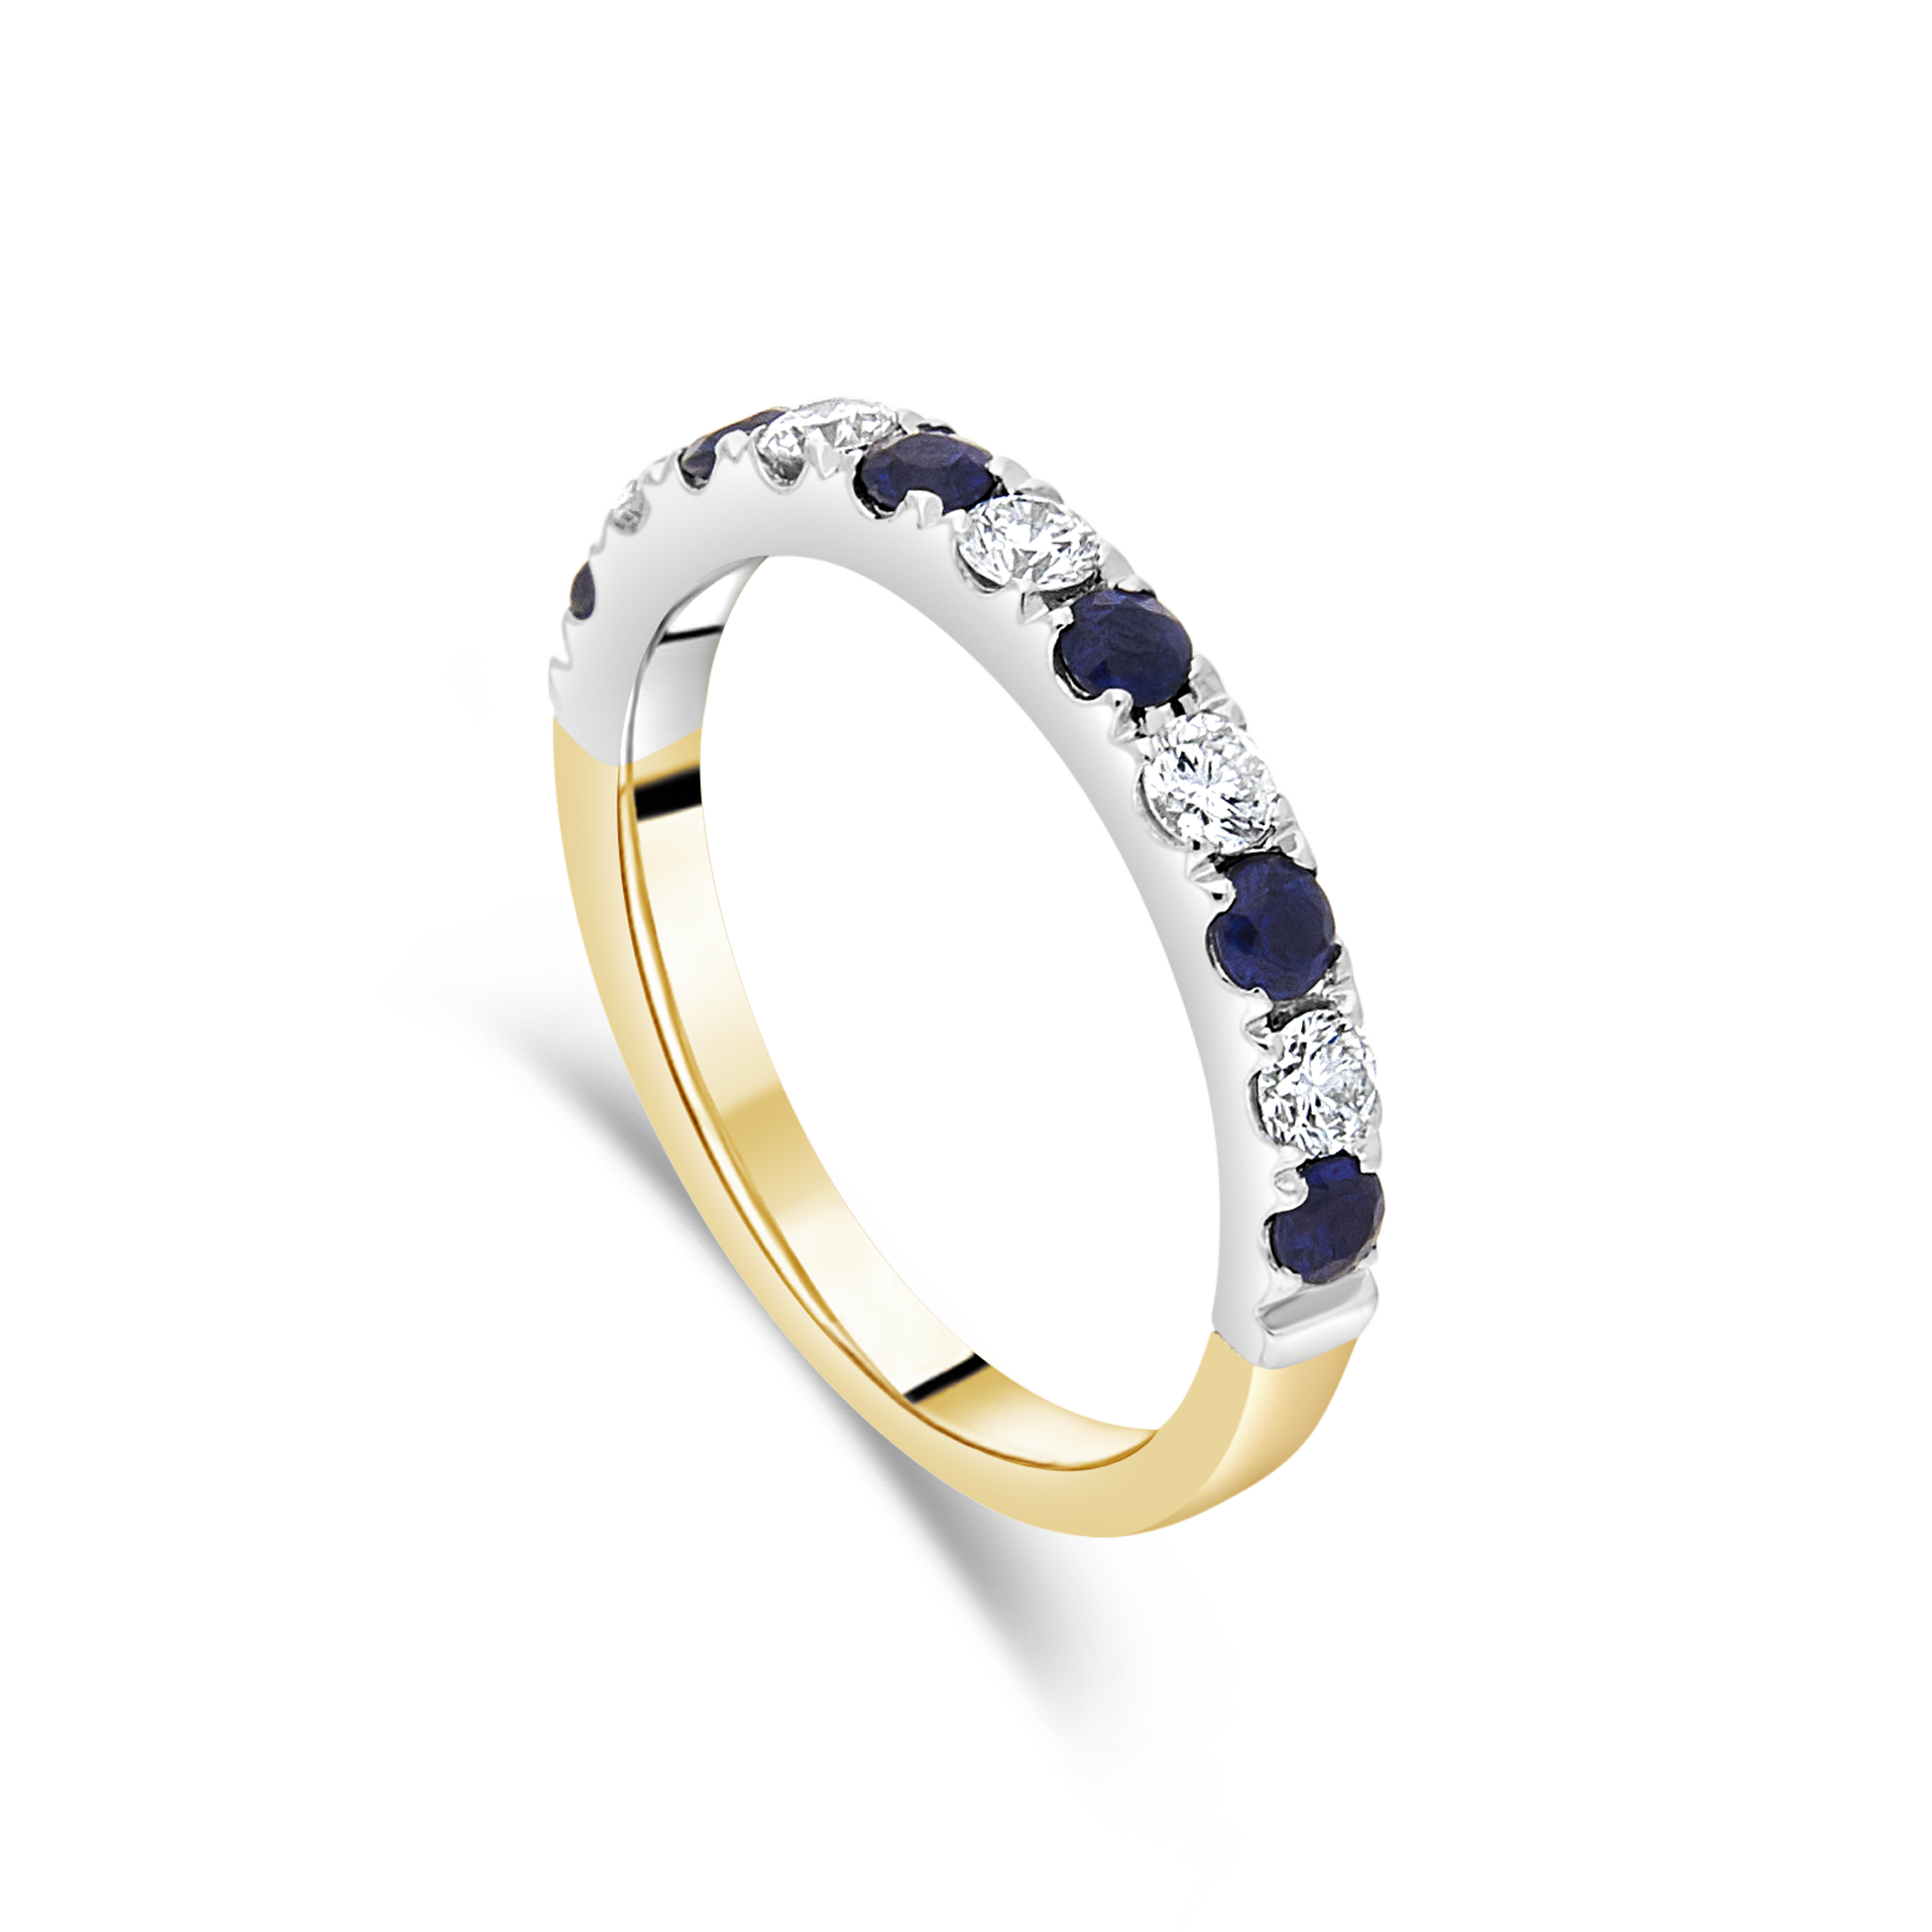 Sapphire and Diamond Ring, Yellow Gold and Platinum